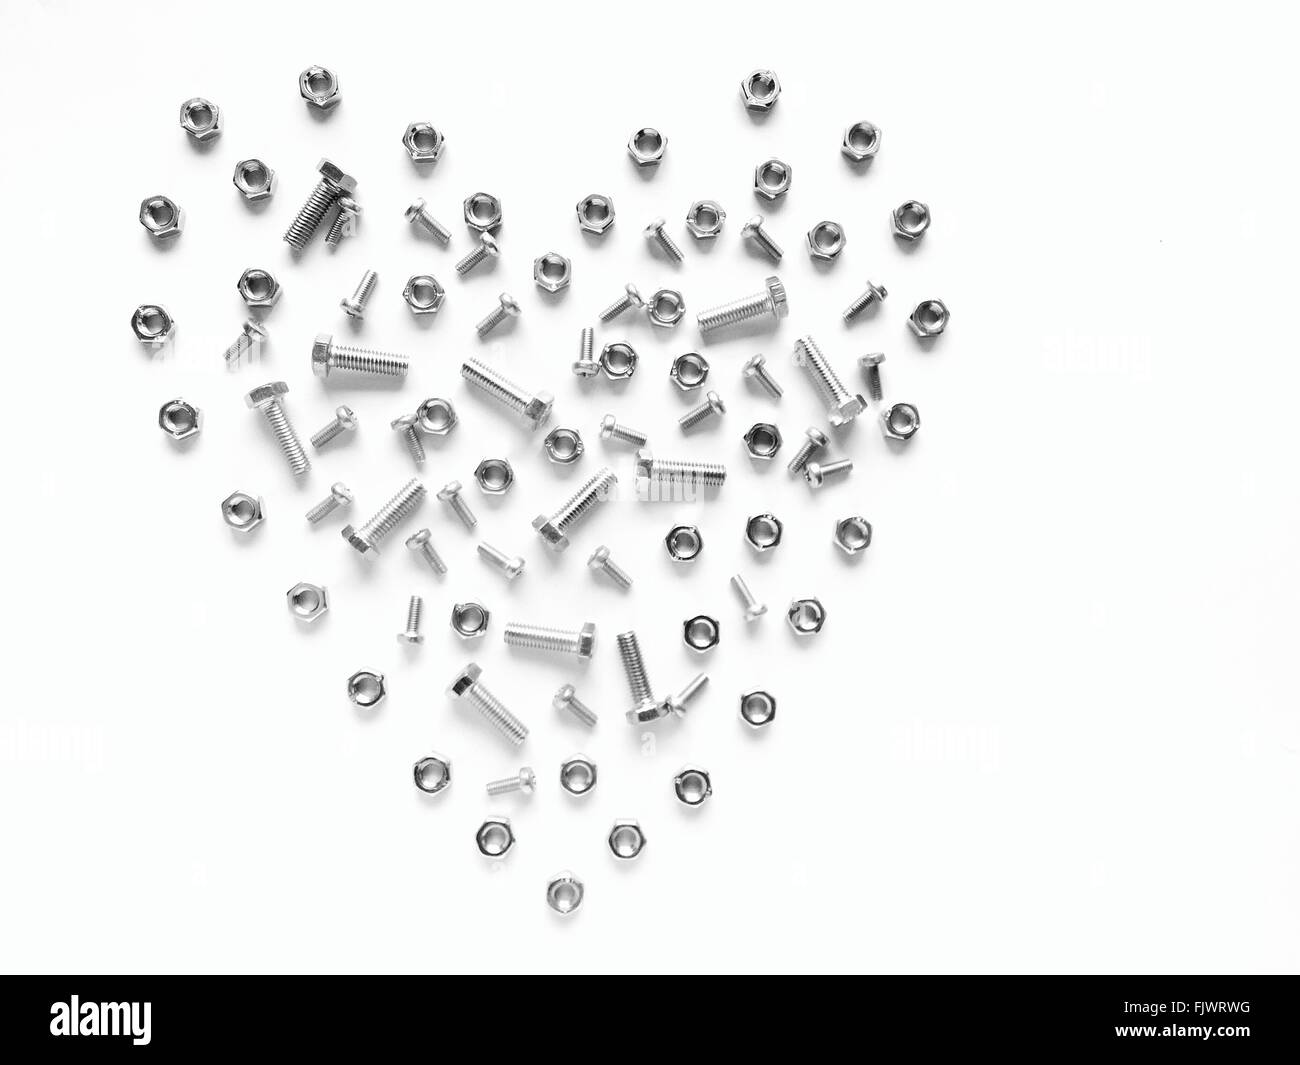 Heart Made Of Nuts And Bolts Against White Background Stock Photo